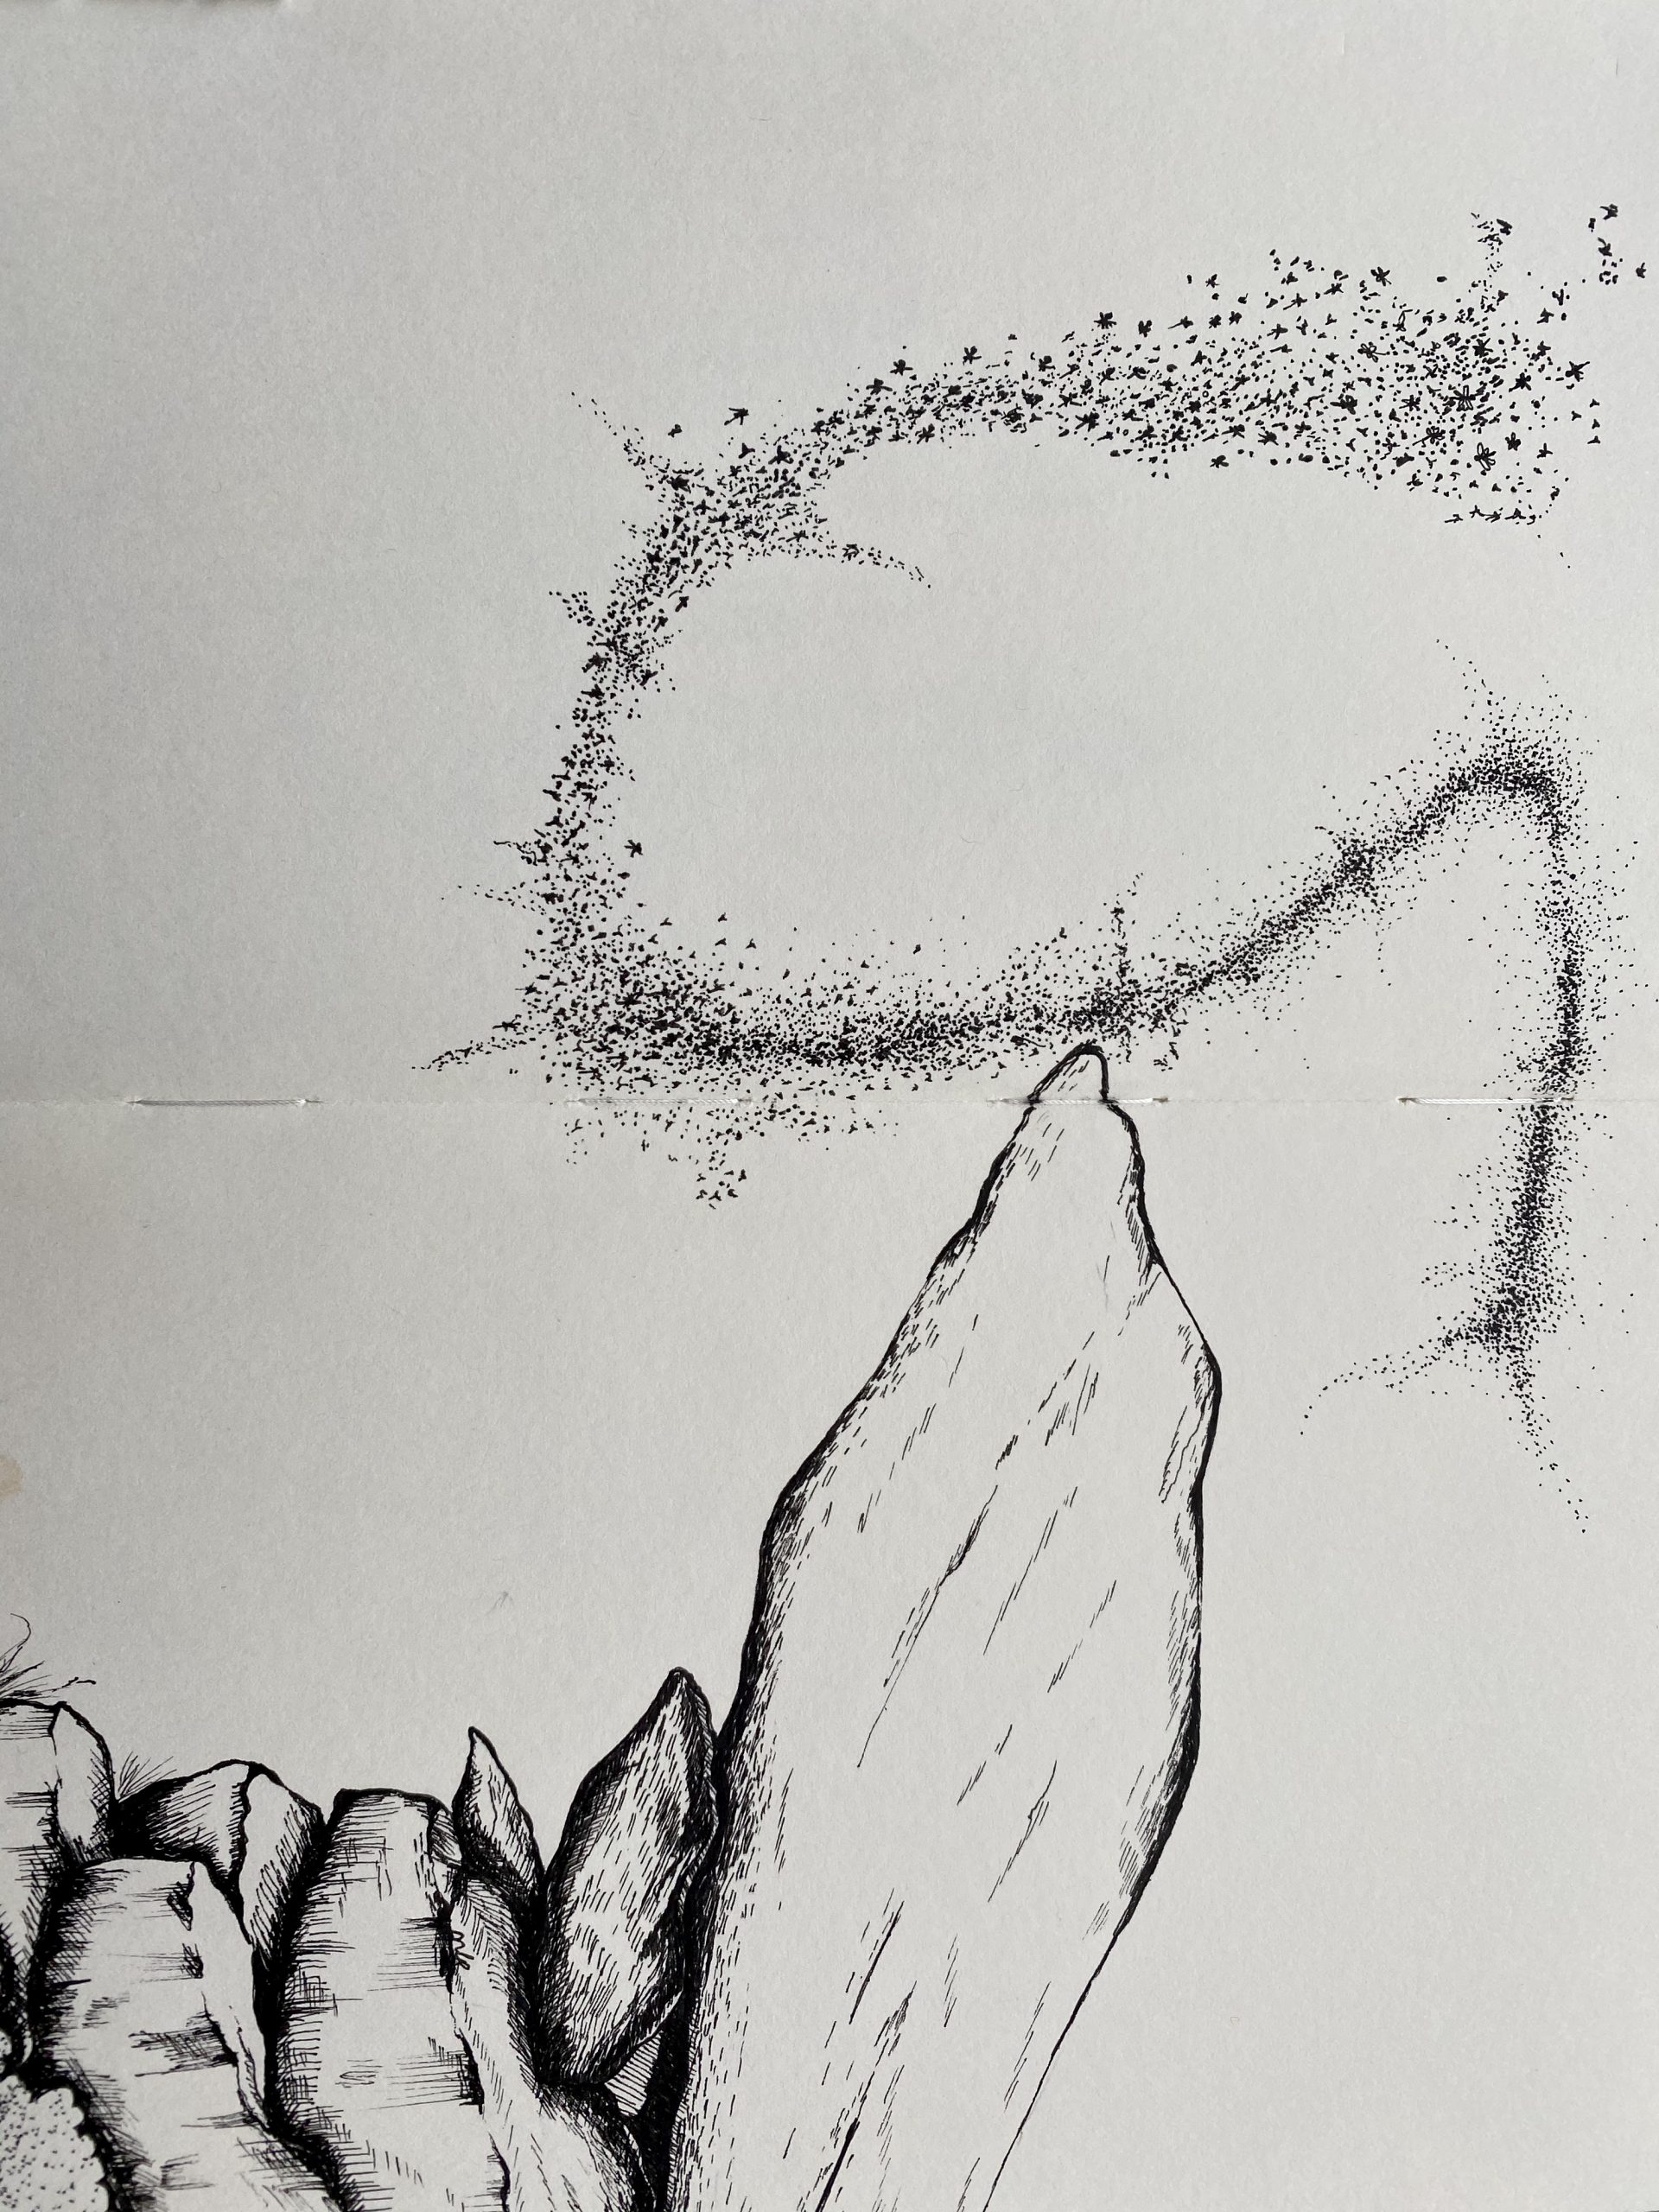 Illustration for Bengali Poetry